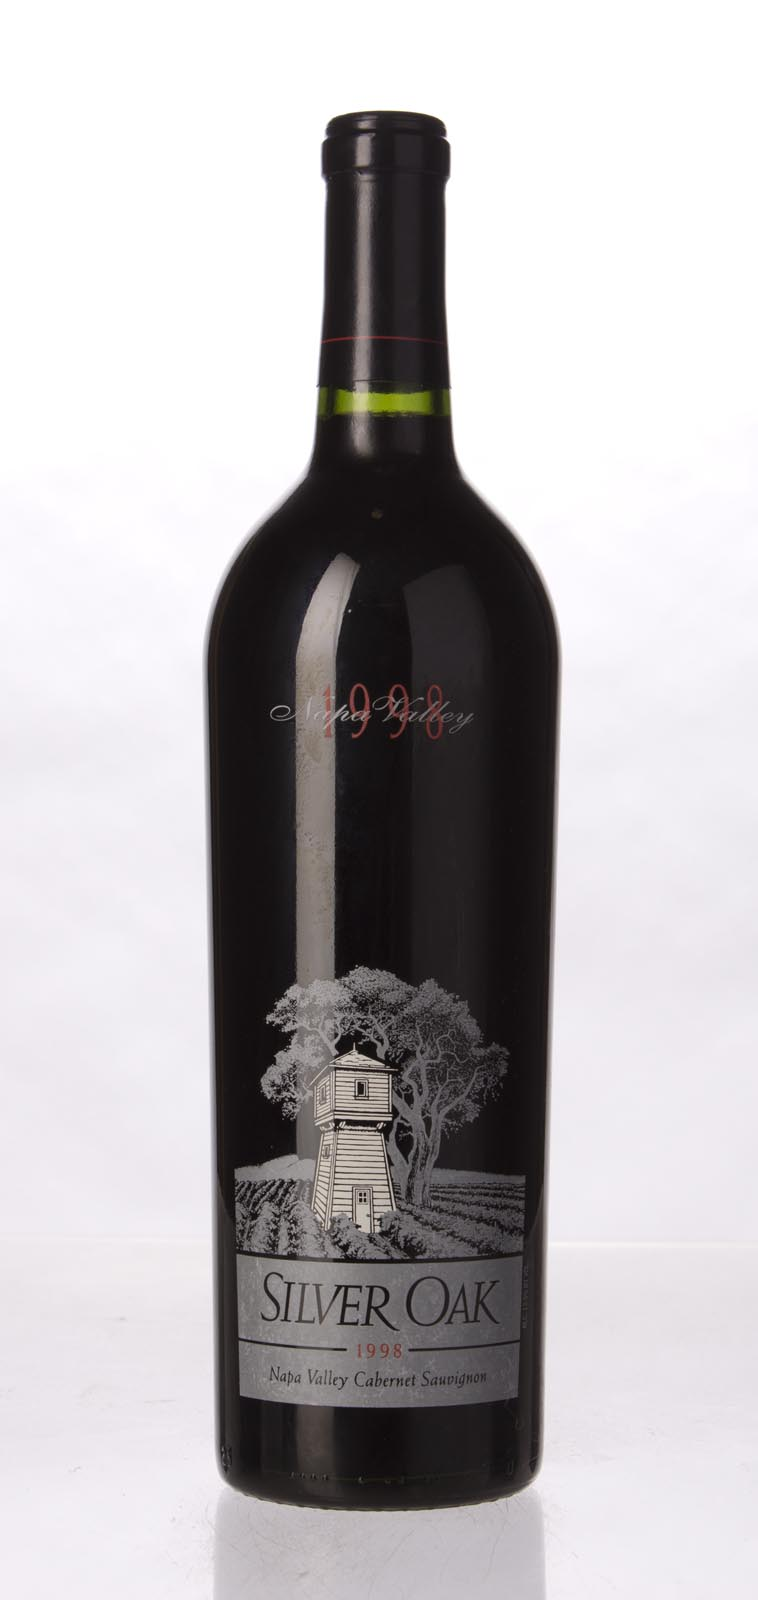 Silver Oak Cabernet Sauvignon Napa Valley 1998, 750mL (WA88) from The BPW - Merchants of rare and fine wines.